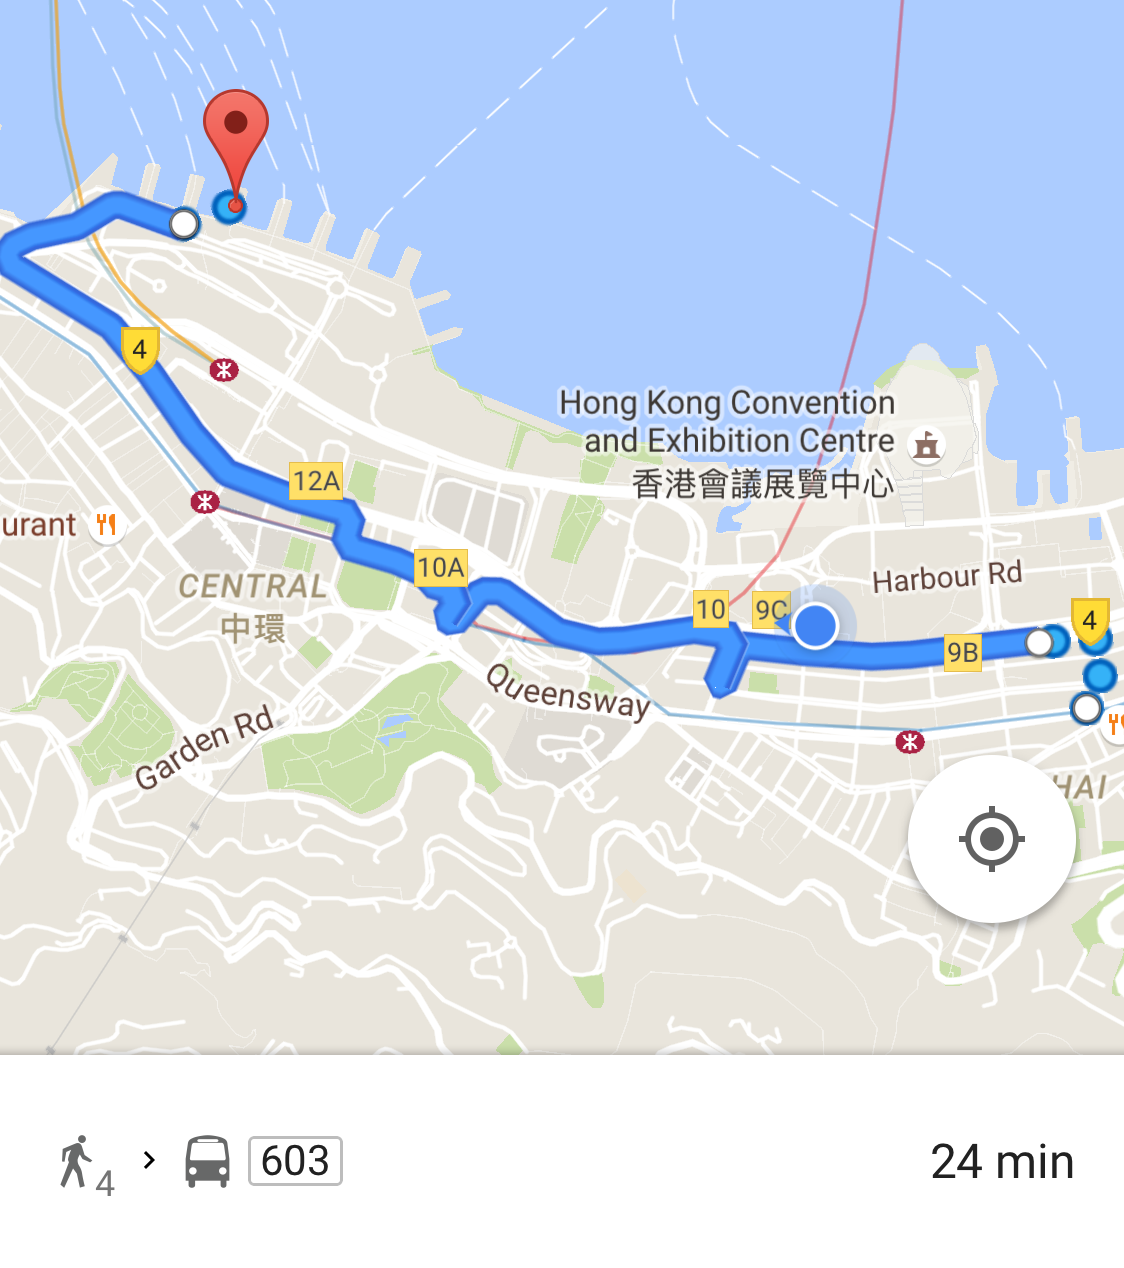 Google Maps suggestion on how to go from Wan Chai to Central Ferry Pier